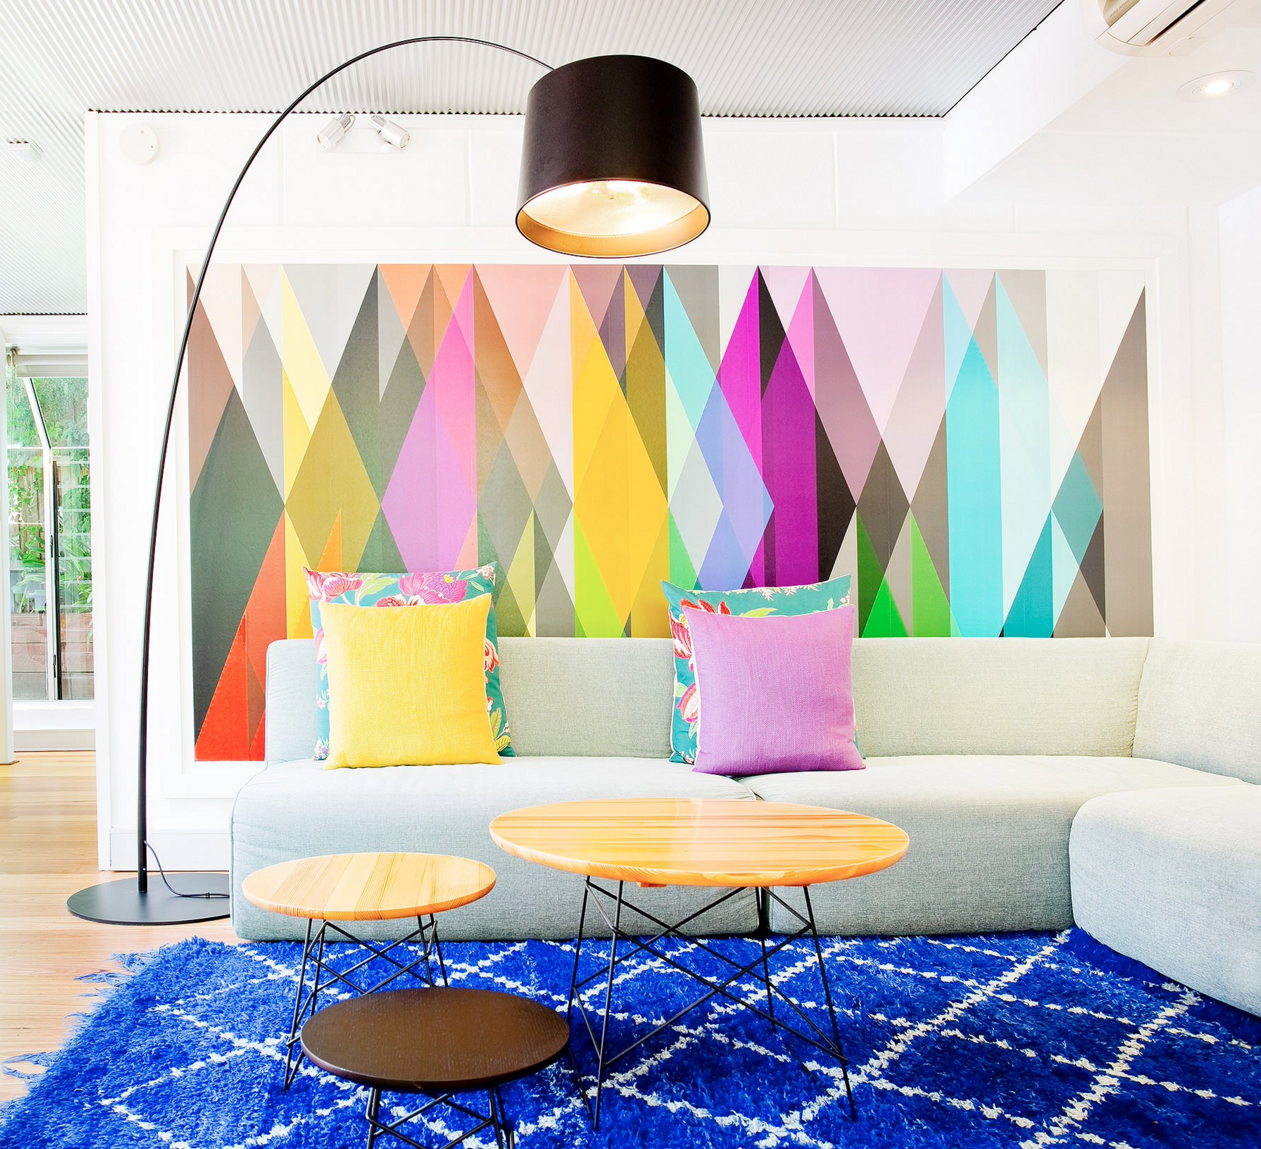 Painted Walls Colorful Room Design: 25 Dazzling Geometric Walls For The Modern Home